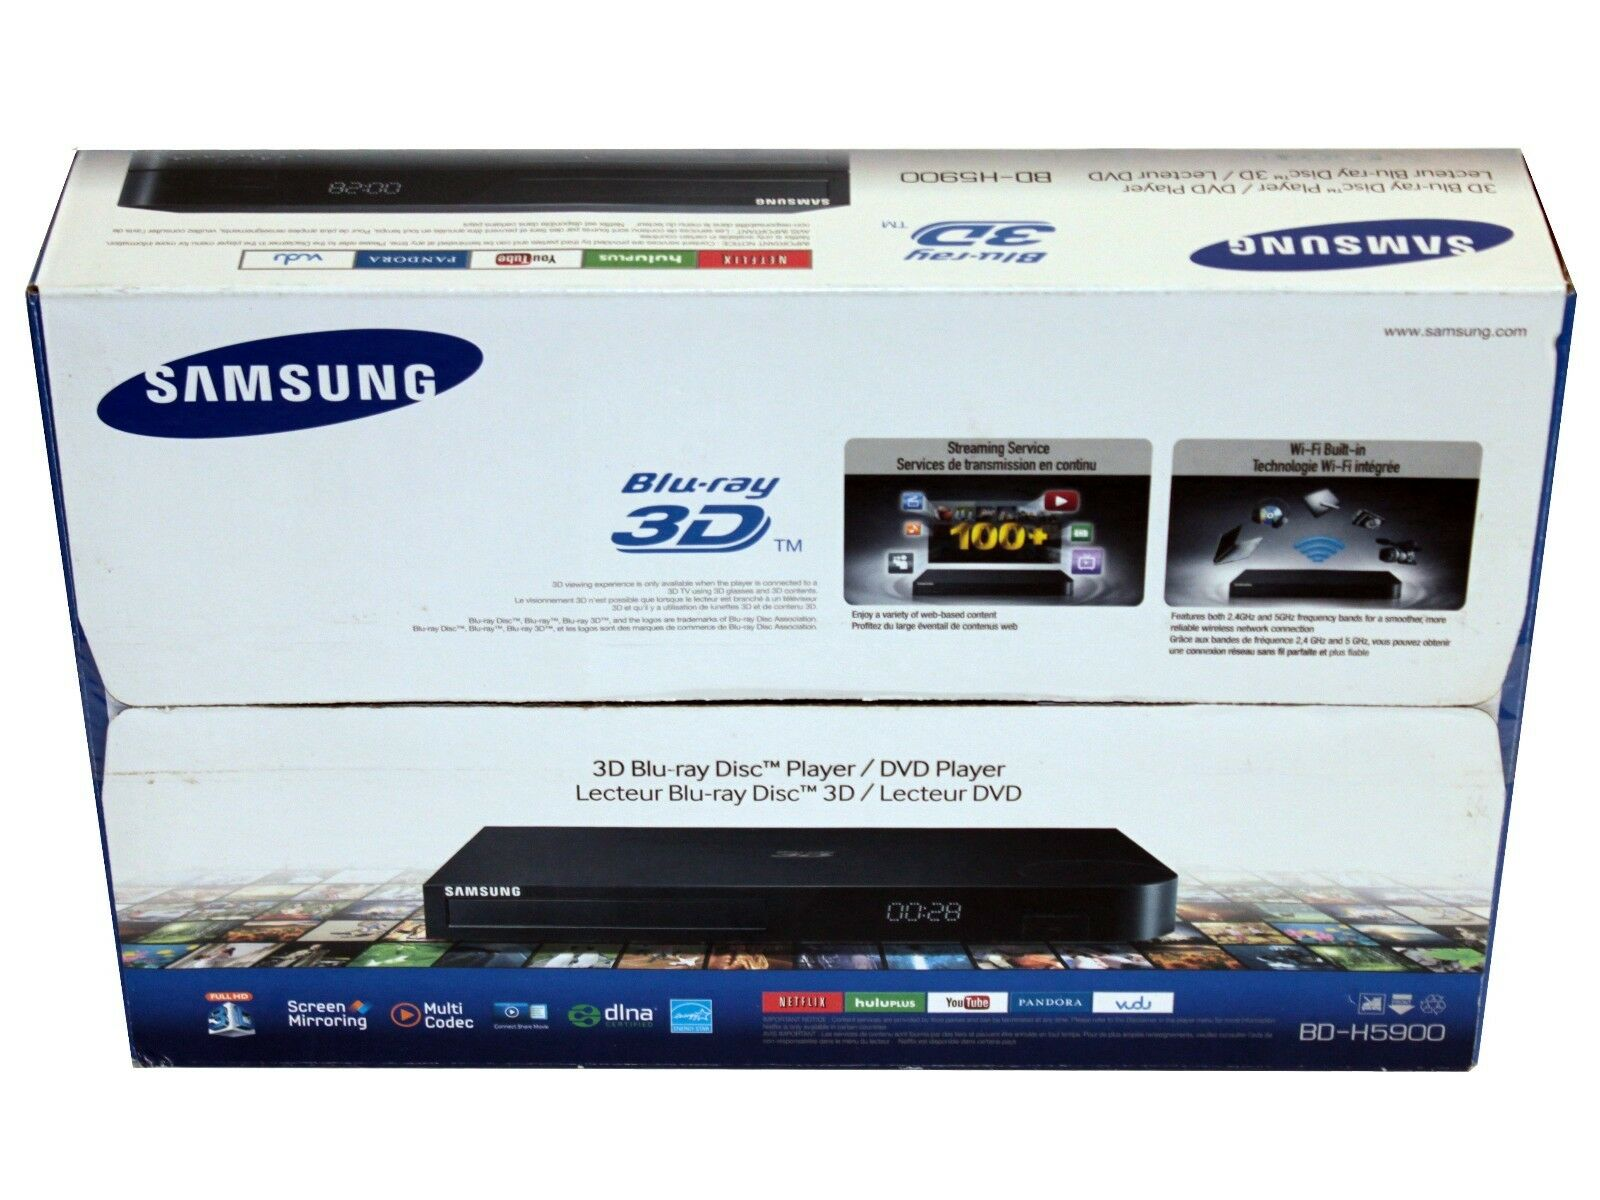 samsung bd h5900 3d blu ray dvd player hd1080p built in. Black Bedroom Furniture Sets. Home Design Ideas